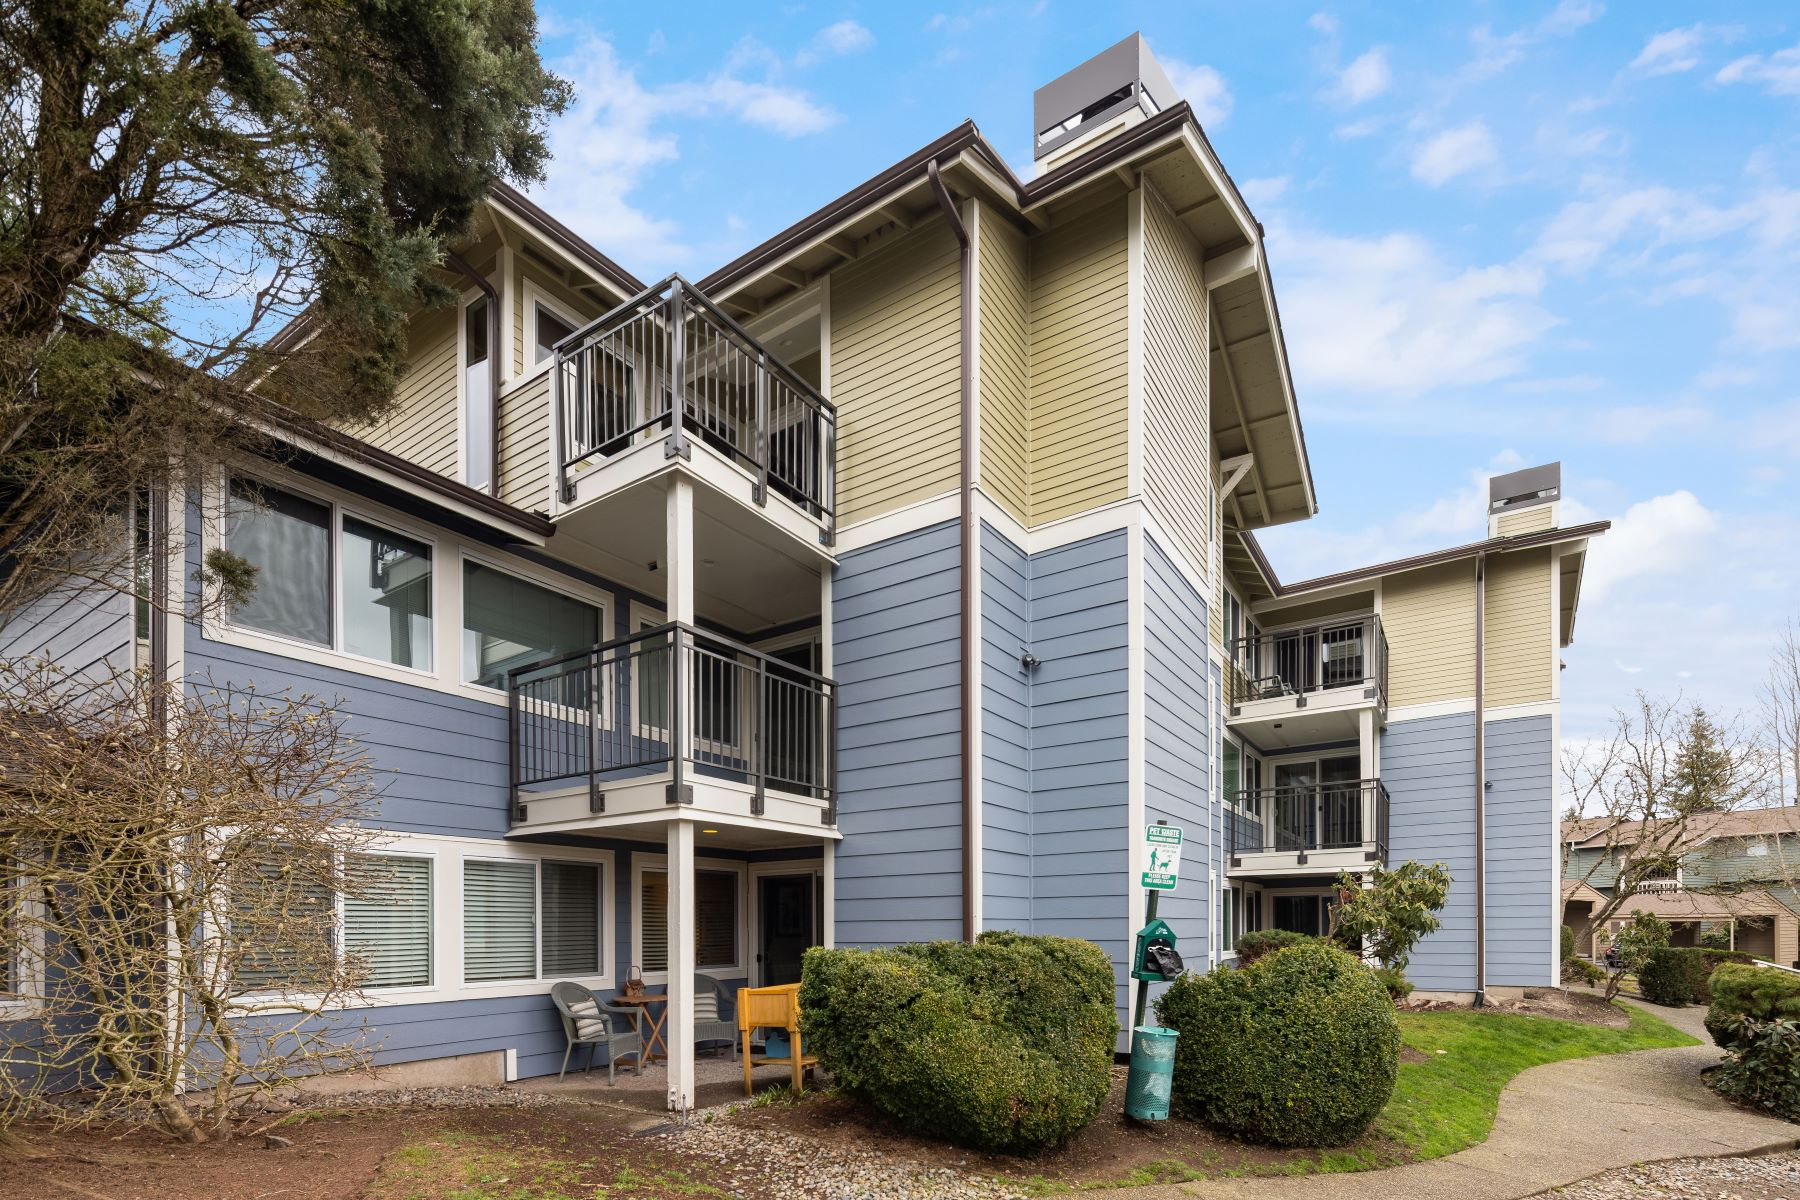 Condominiums for Sale at 7581 Old Redmond Rd #1, Redmond, WA 98052 7581 Old Redmond Rd #1 Redmond, Washington 98052 United States